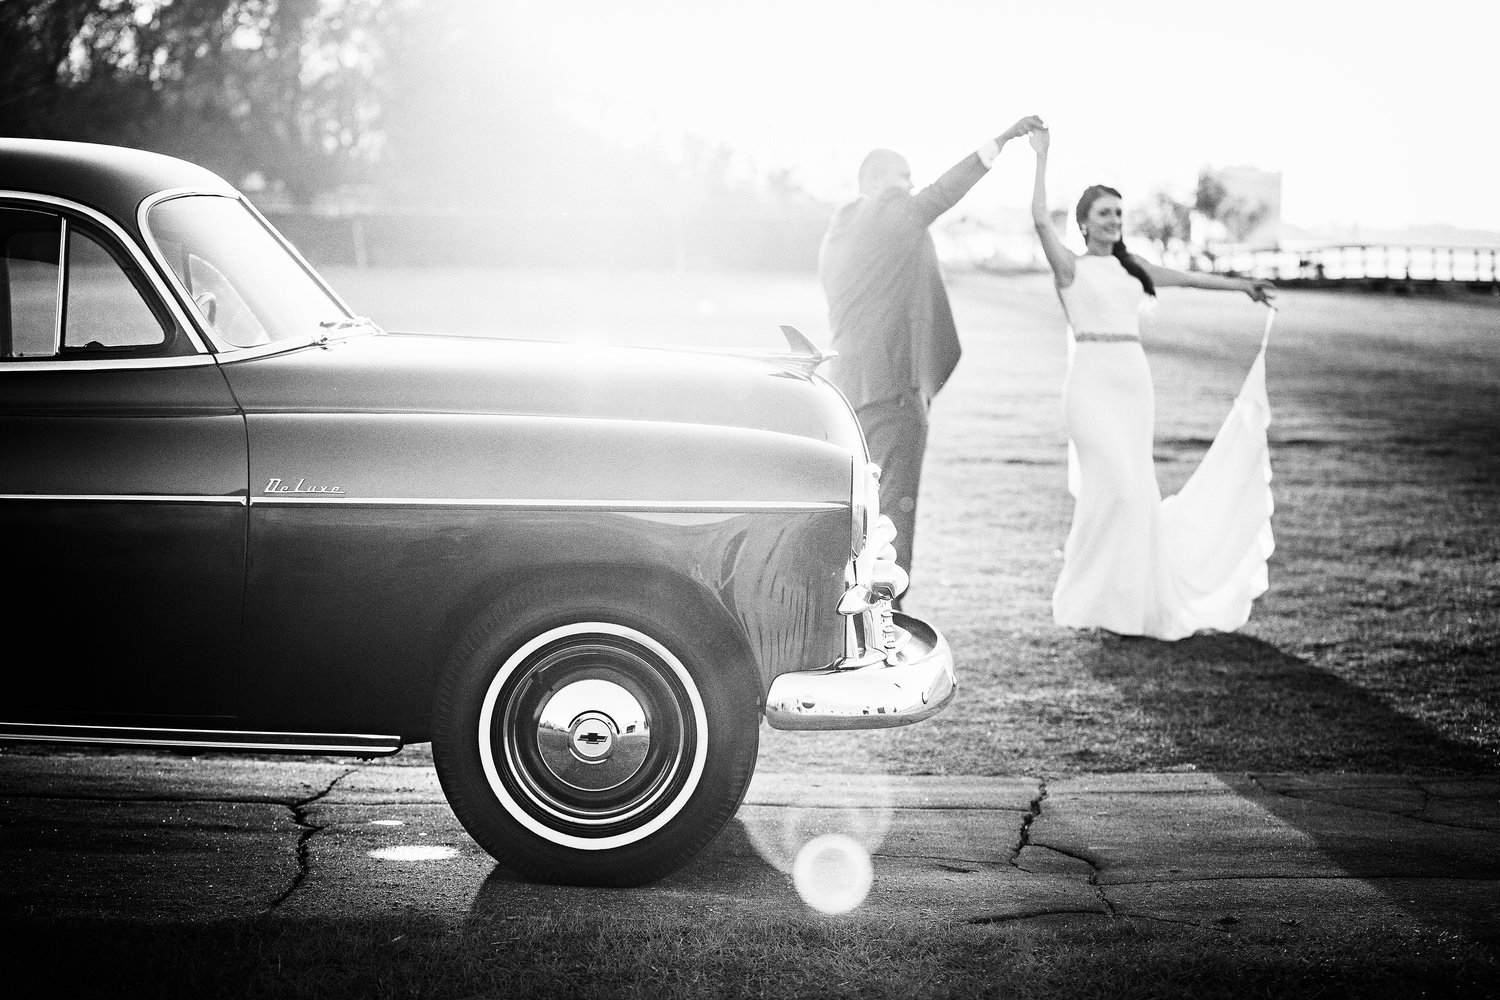 izzy-hudgins-photography-savannah-wedding-ivory-and-beau-bridal-boutique-savannah-wedding-planner-colonial-house-of-flowers-forsyth-park-wedding-old-fort-jackson-wedding-squidwed-films-savannah-boutique-savannah-weddings-55.jpg